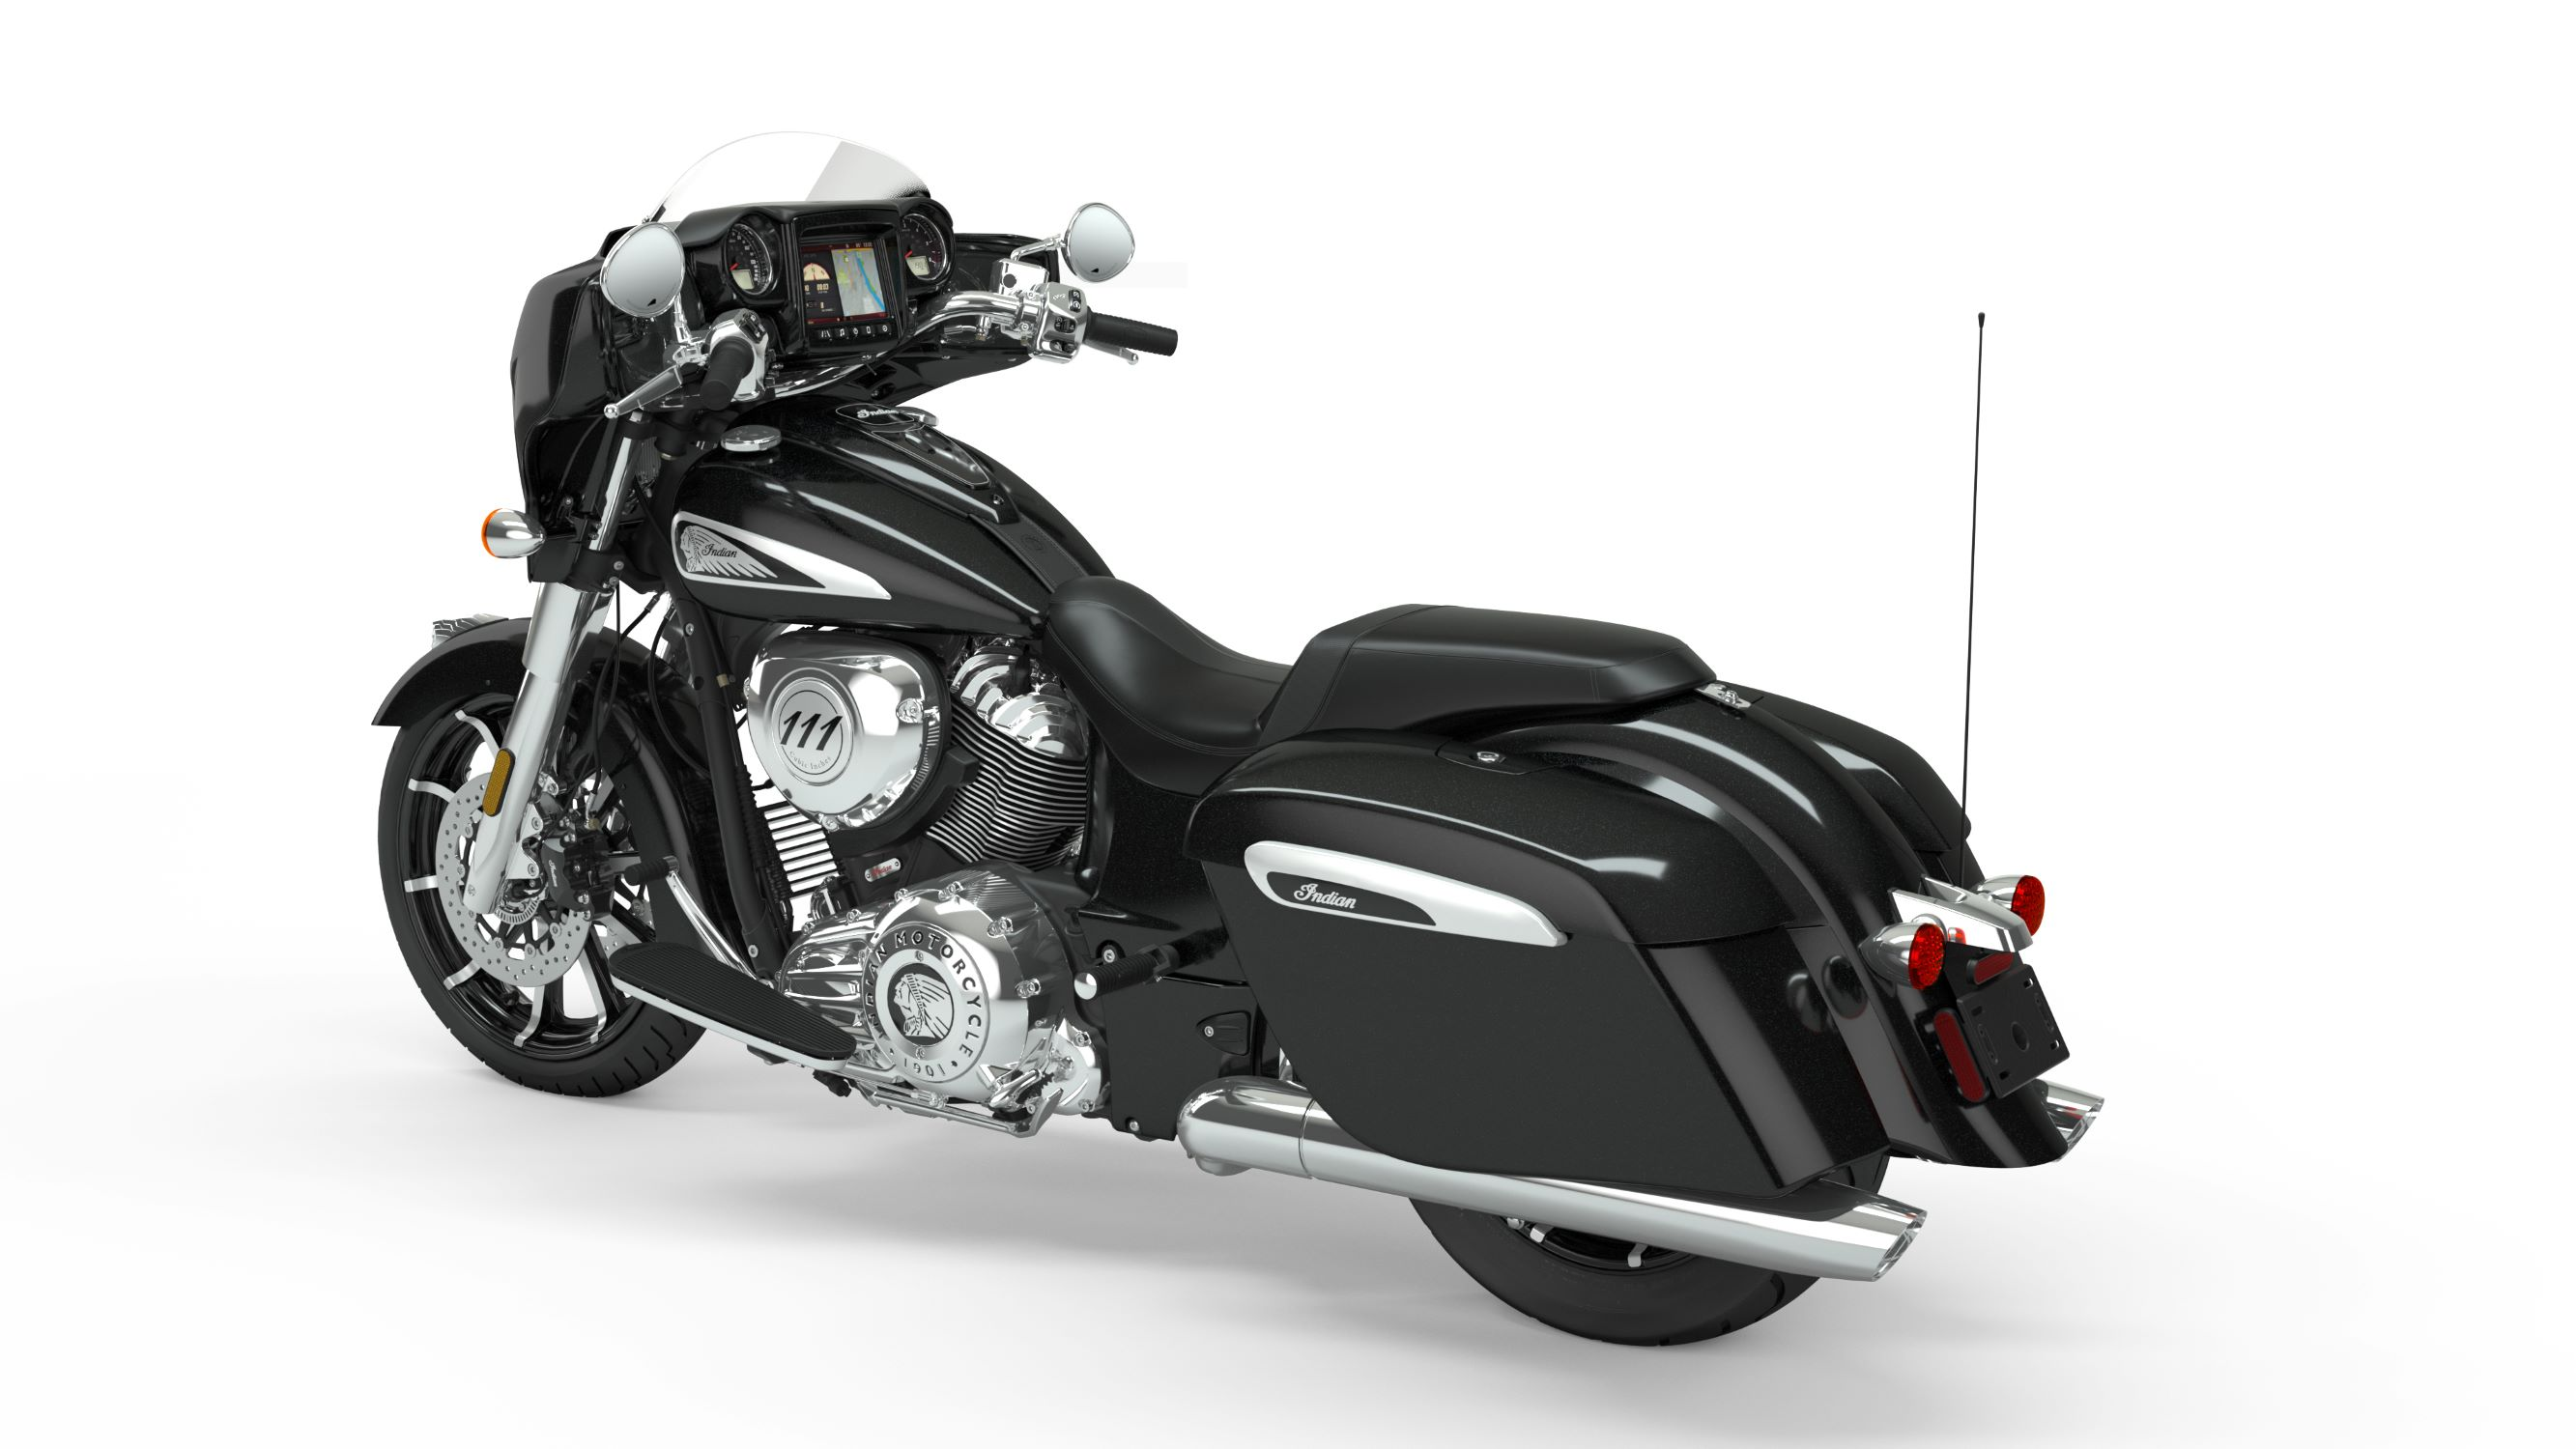 2019 Chieftain Limited Thunder Black Pearl